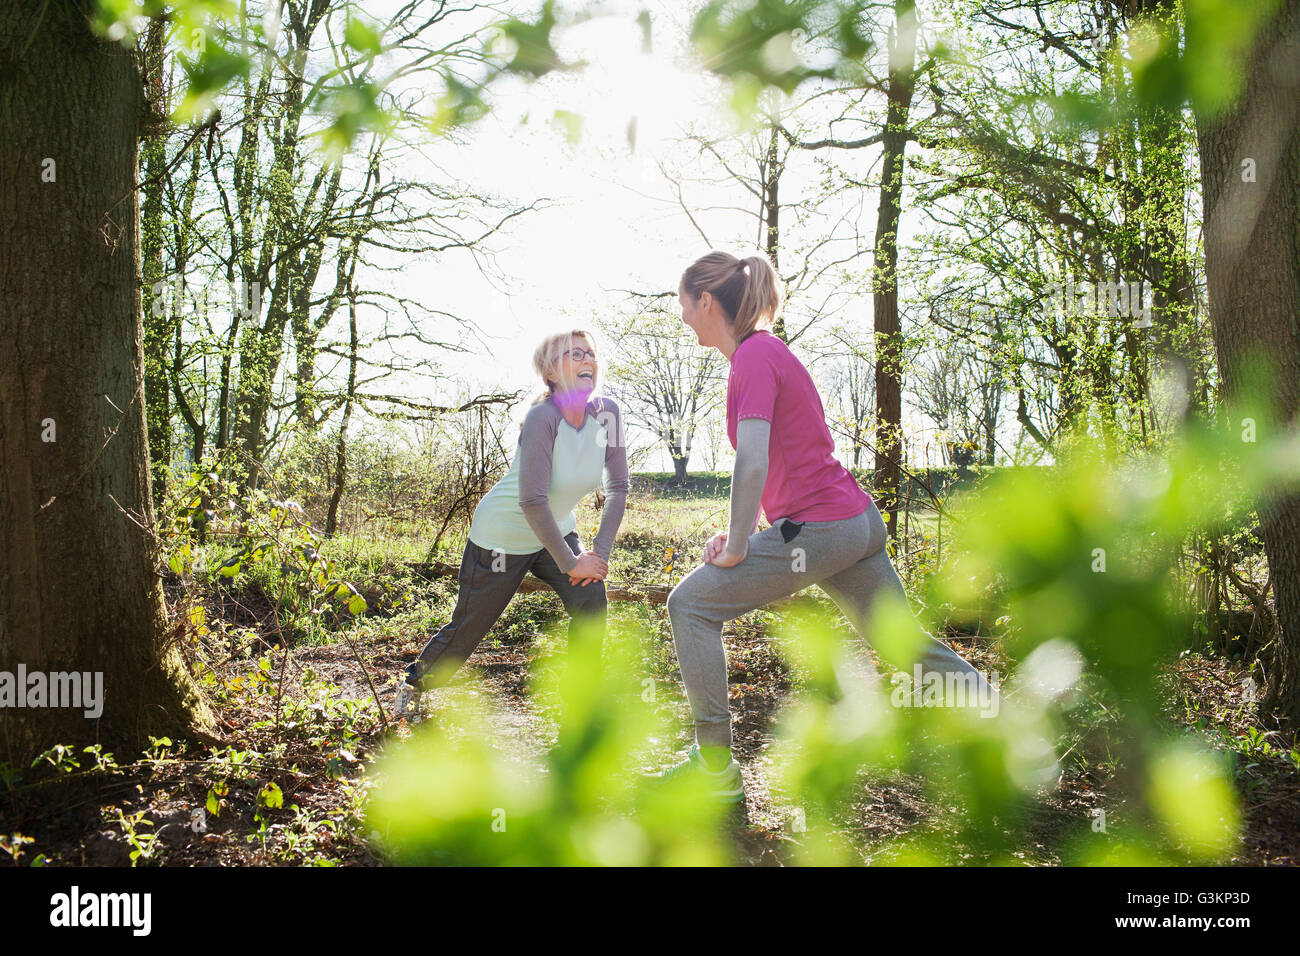 Women face to face in forest hands on knee lunging Stock Photo